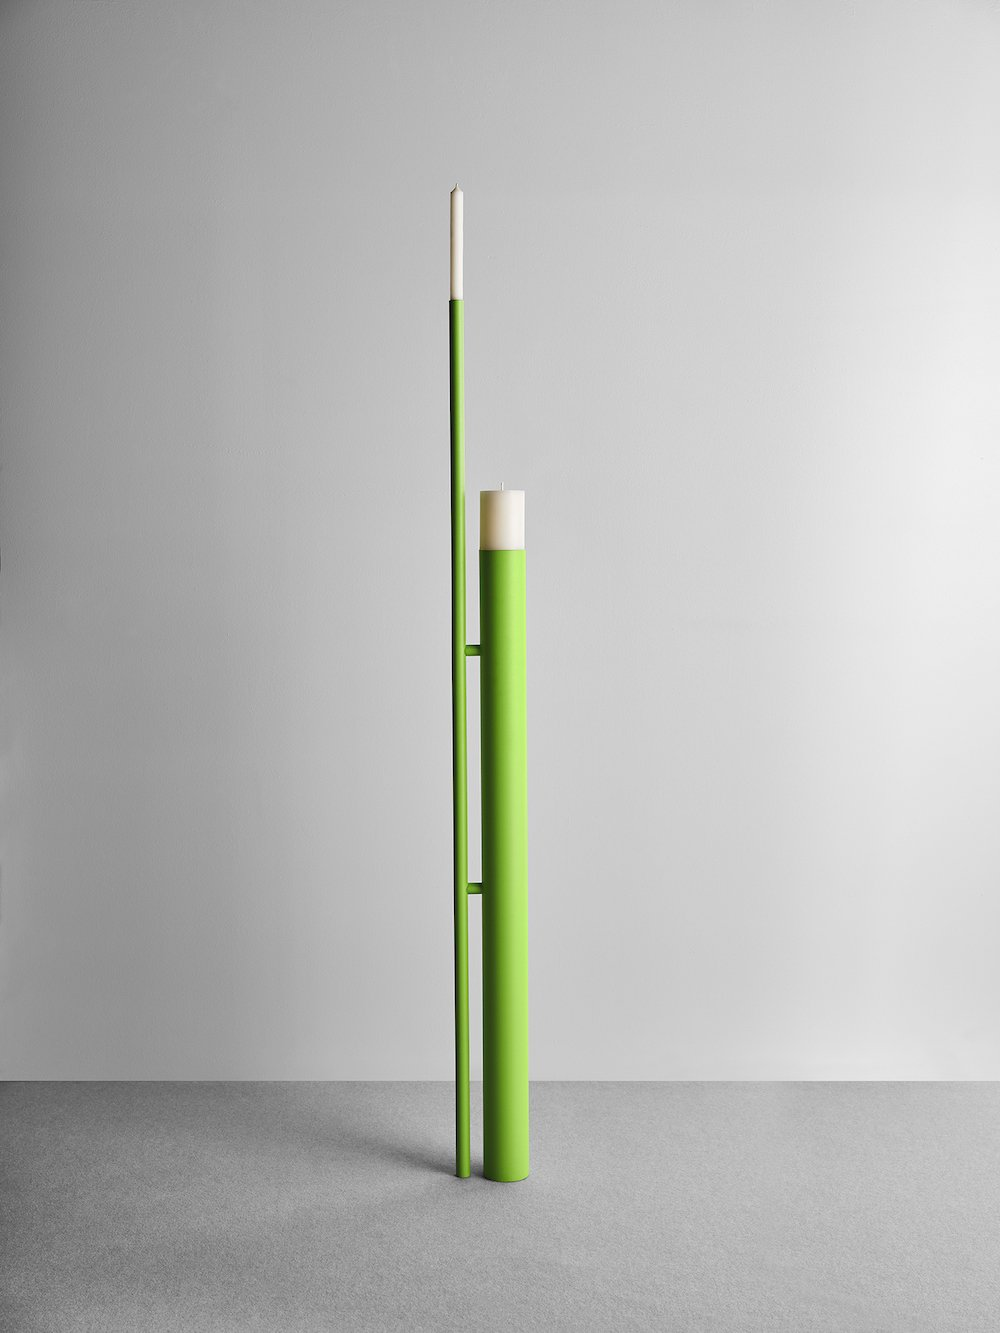 A FLAME FOR RESEARCH - Stack candleholder by Phiippe Malouin - Photo by Matteo Imbriani.